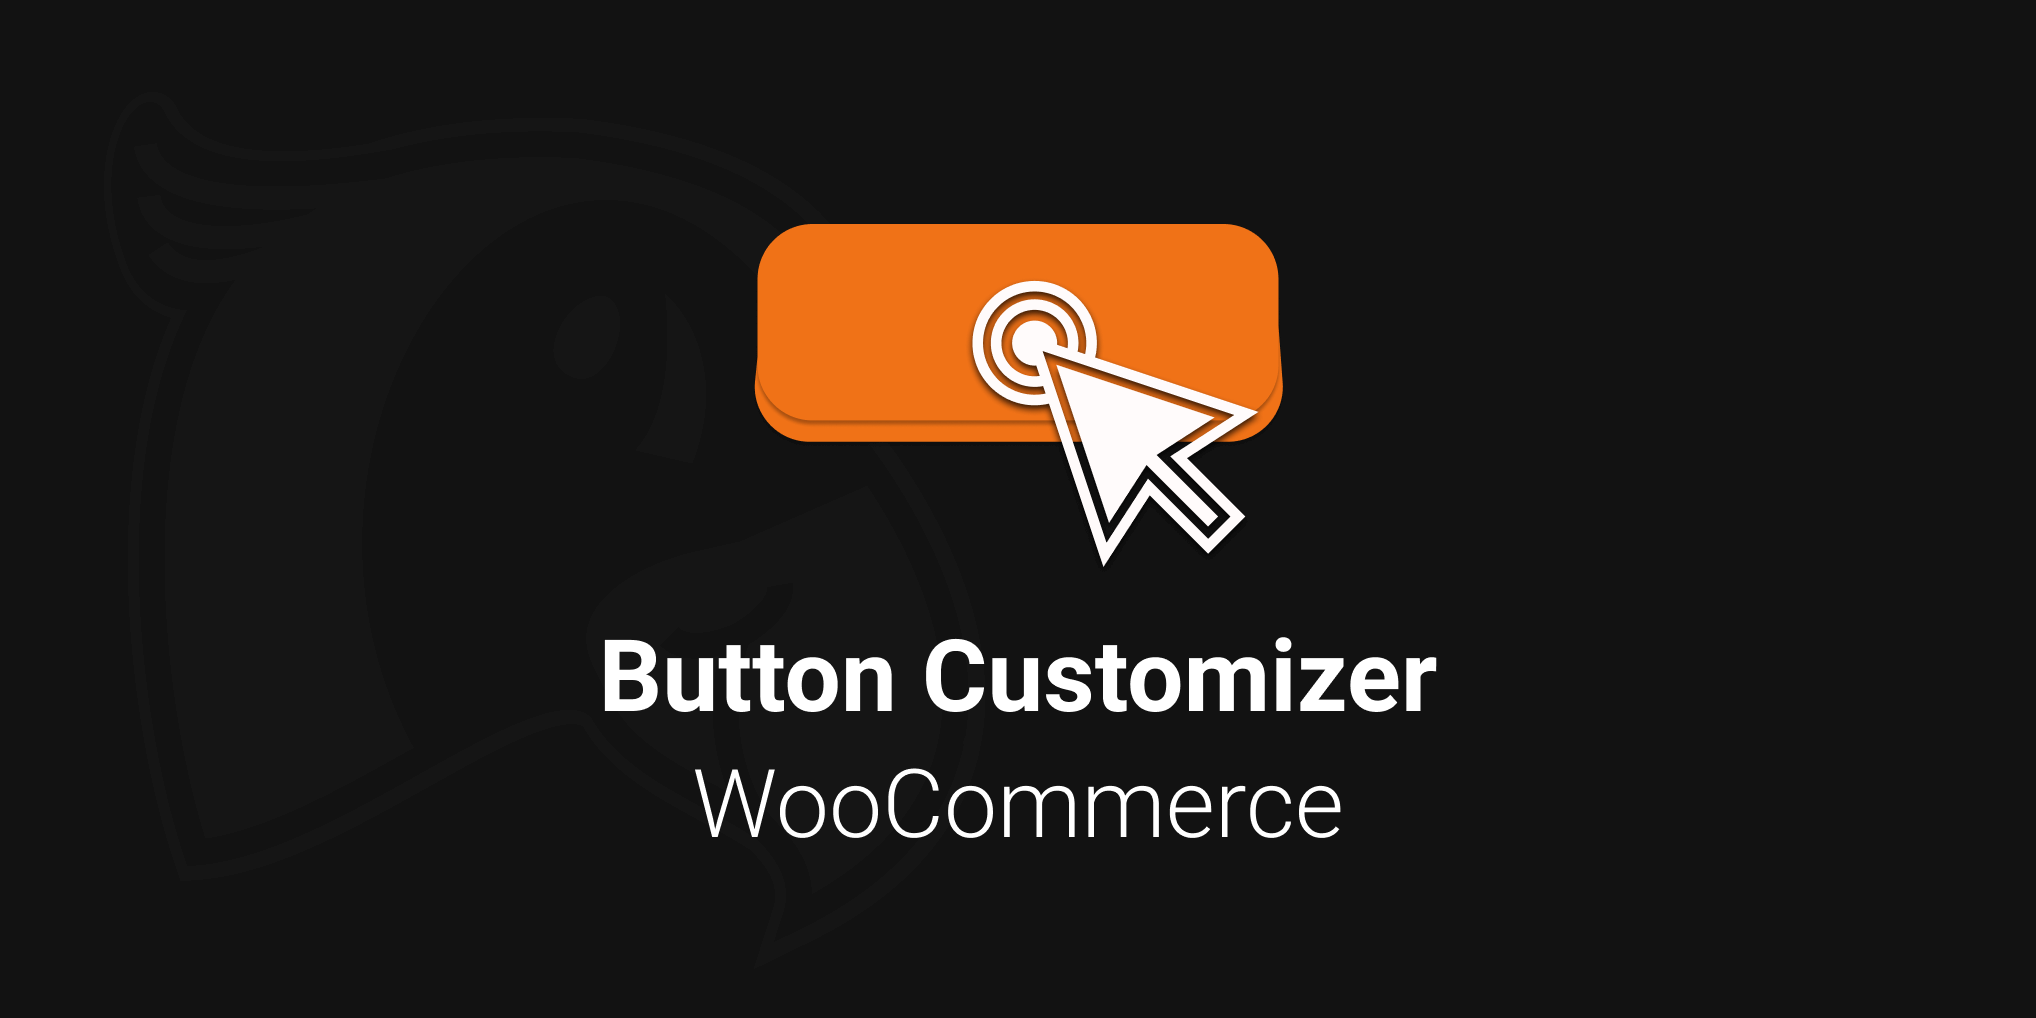 Logo for Button Customizer WooCommerce